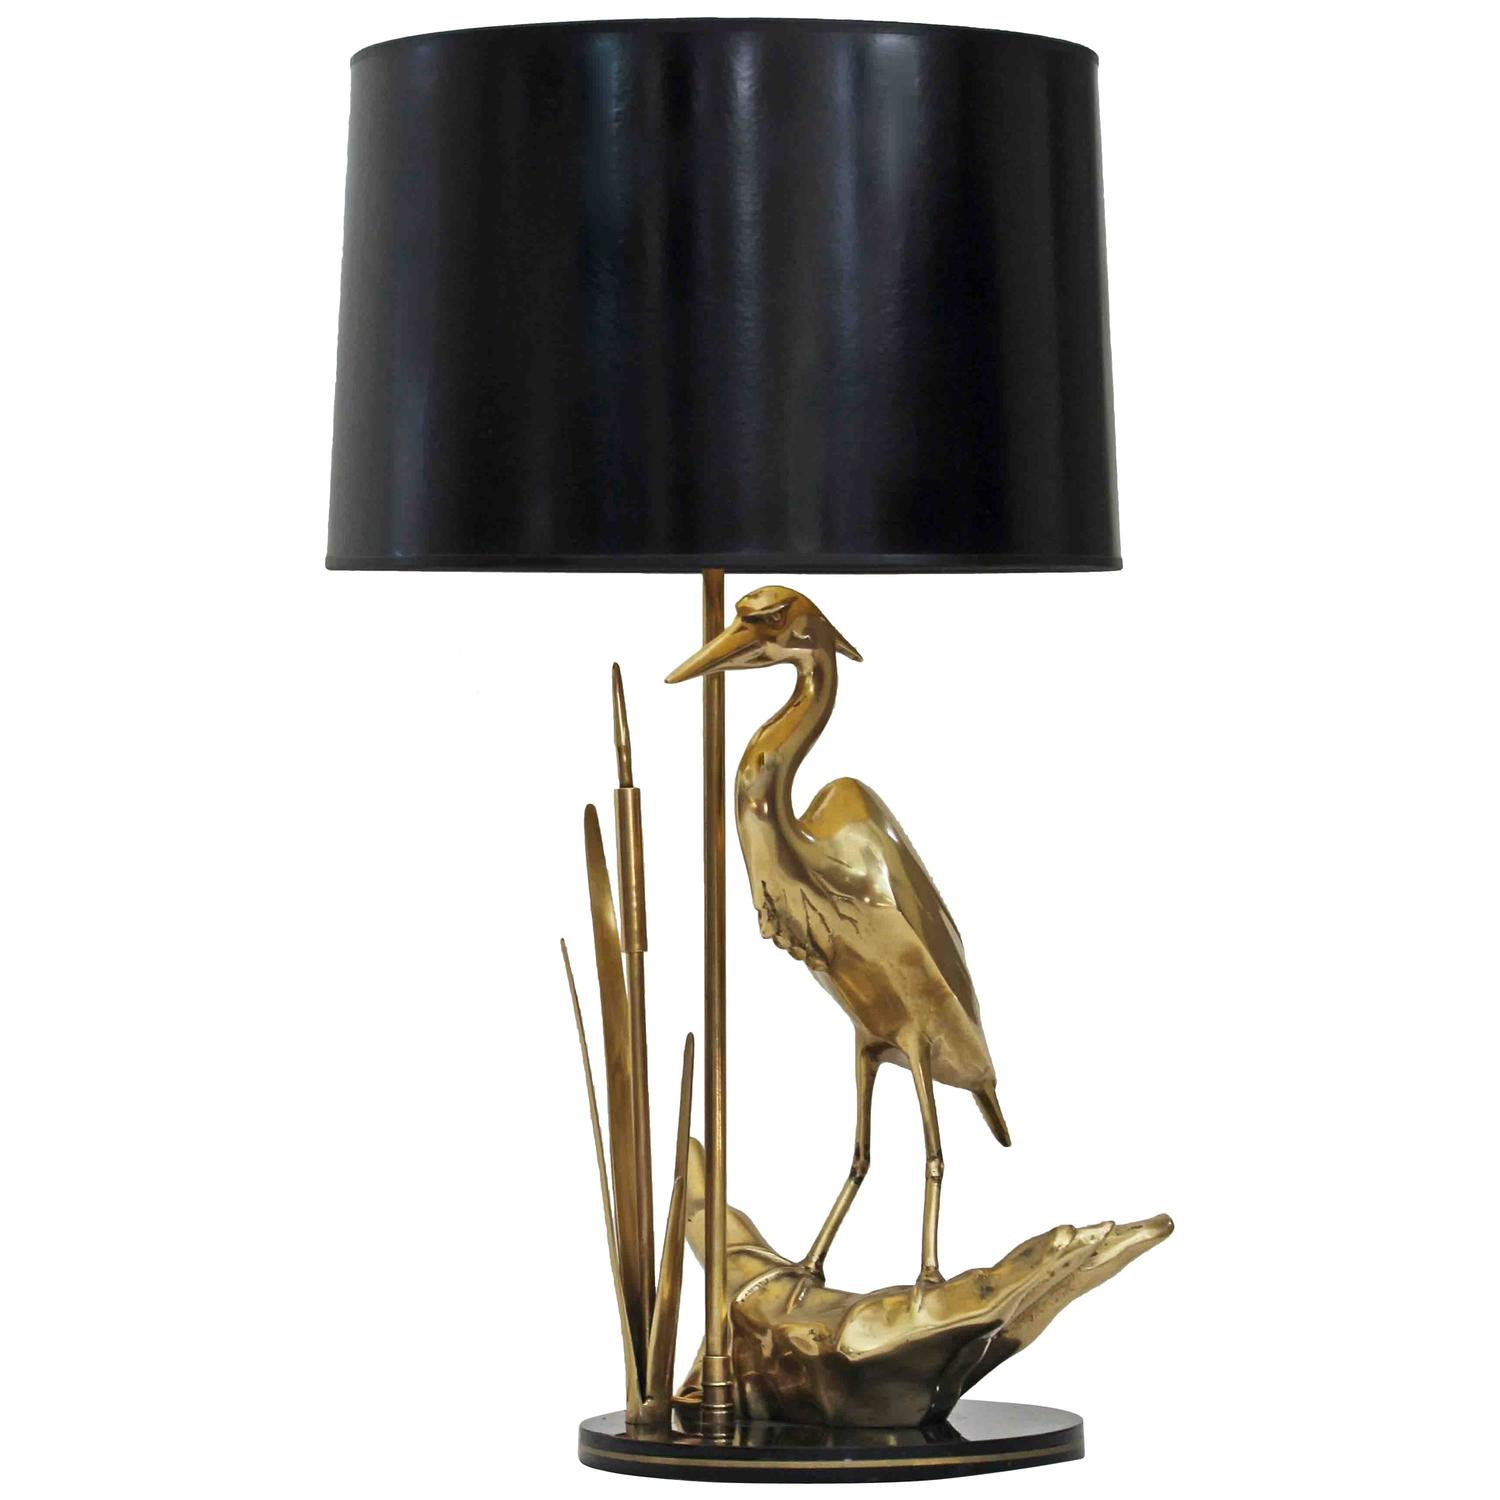 Gold bird table lamp best inspiration for table lamp brass heron bird table lamp for sale at 1stdibs mozeypictures